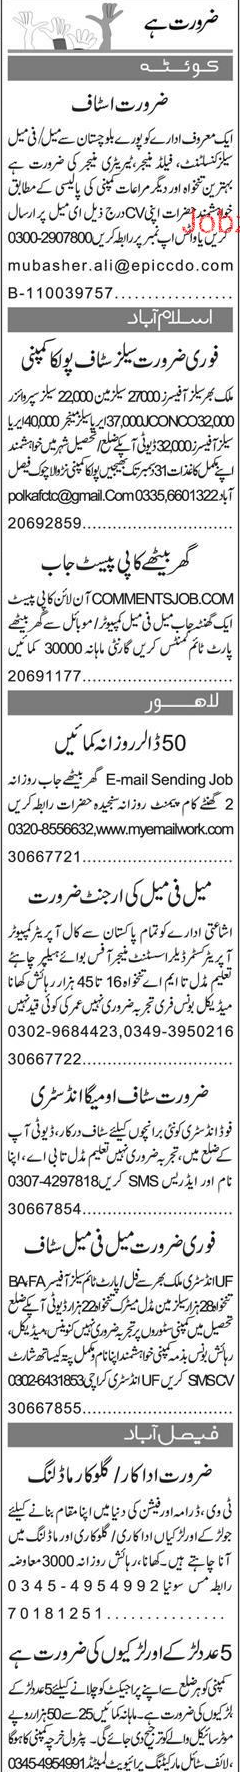 Field Manager, Sales Officer, Data Entry Operator Wanted